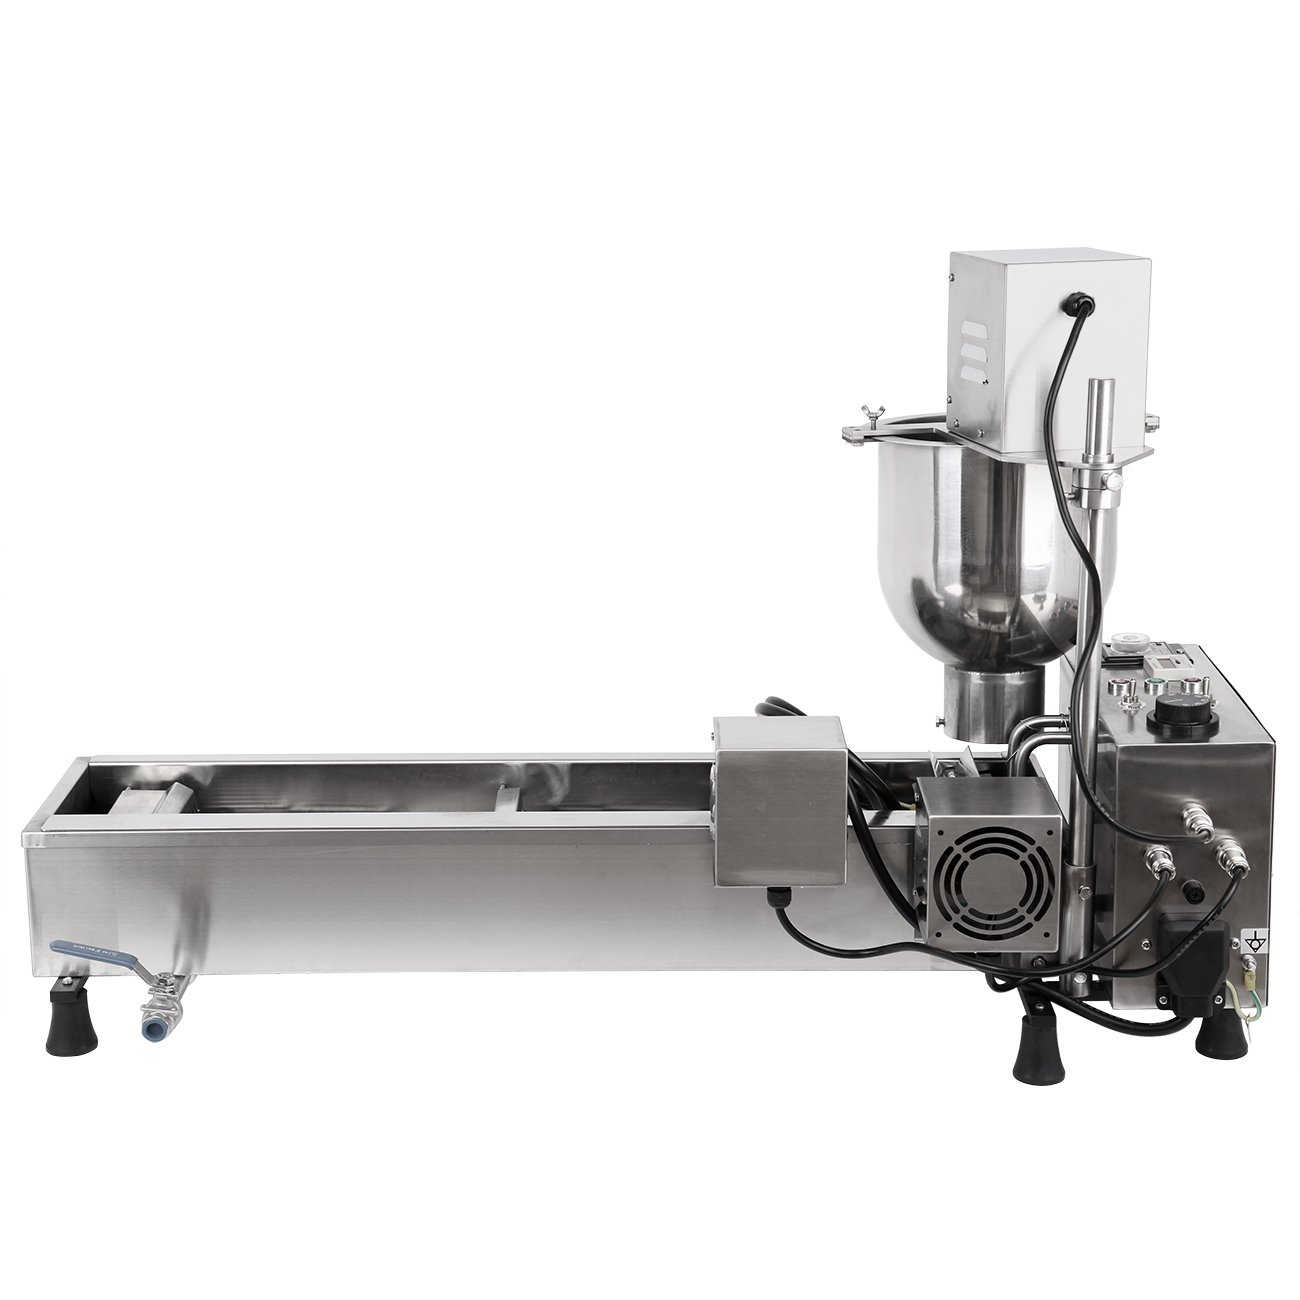 Ridgeyard Commercial Automatic Donut Making Machine Auto Donut Maker Machine with 3 Sizes Molds and 7L Bucket 110V 3000W, Ship From US by Ridgeyard